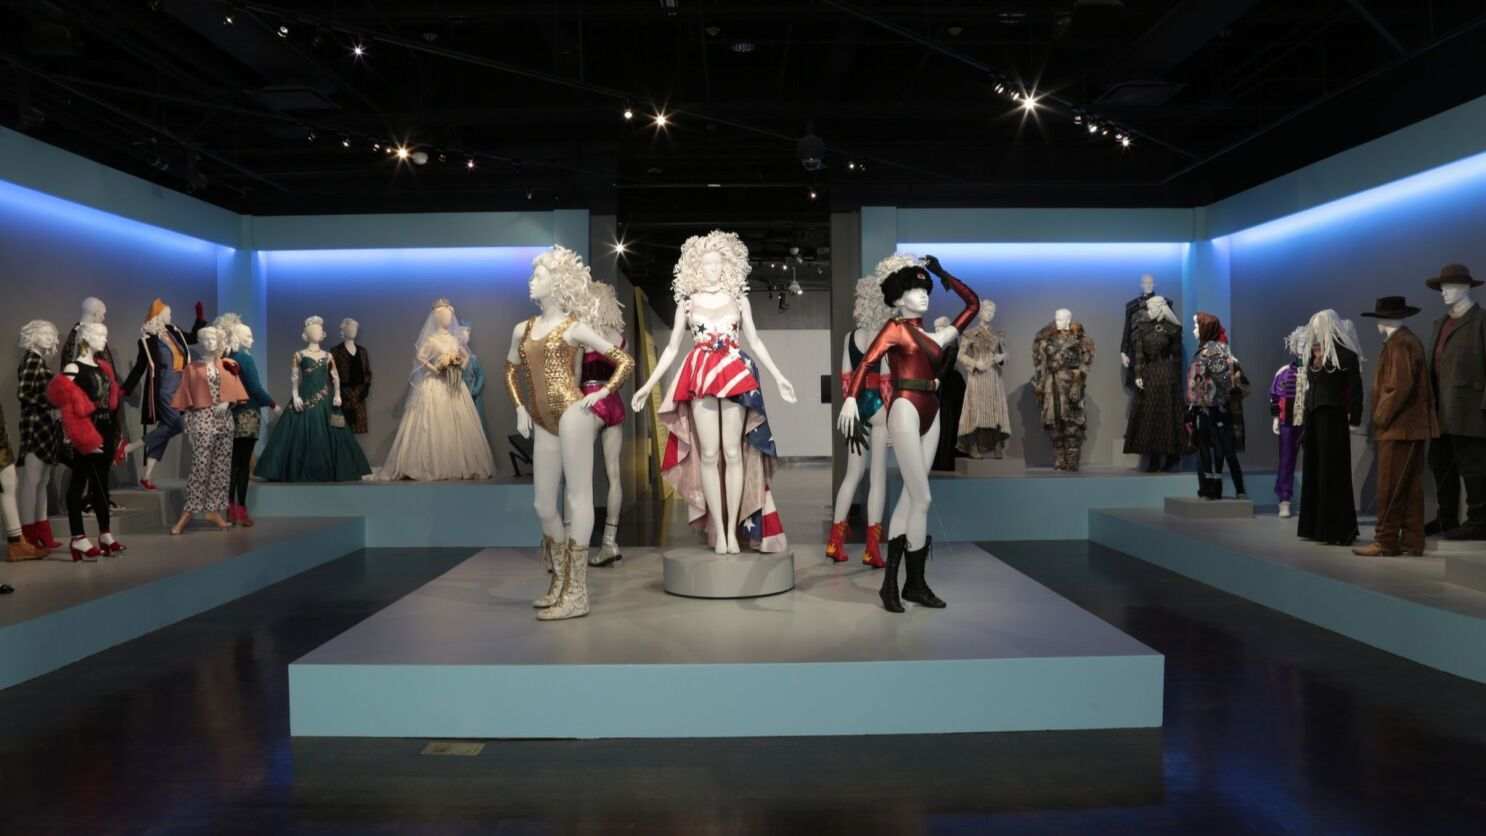 Costumes From Glow Outlander The Crown Are On Display At The Tv Costume Exhibition At Fidm Los Angeles Times